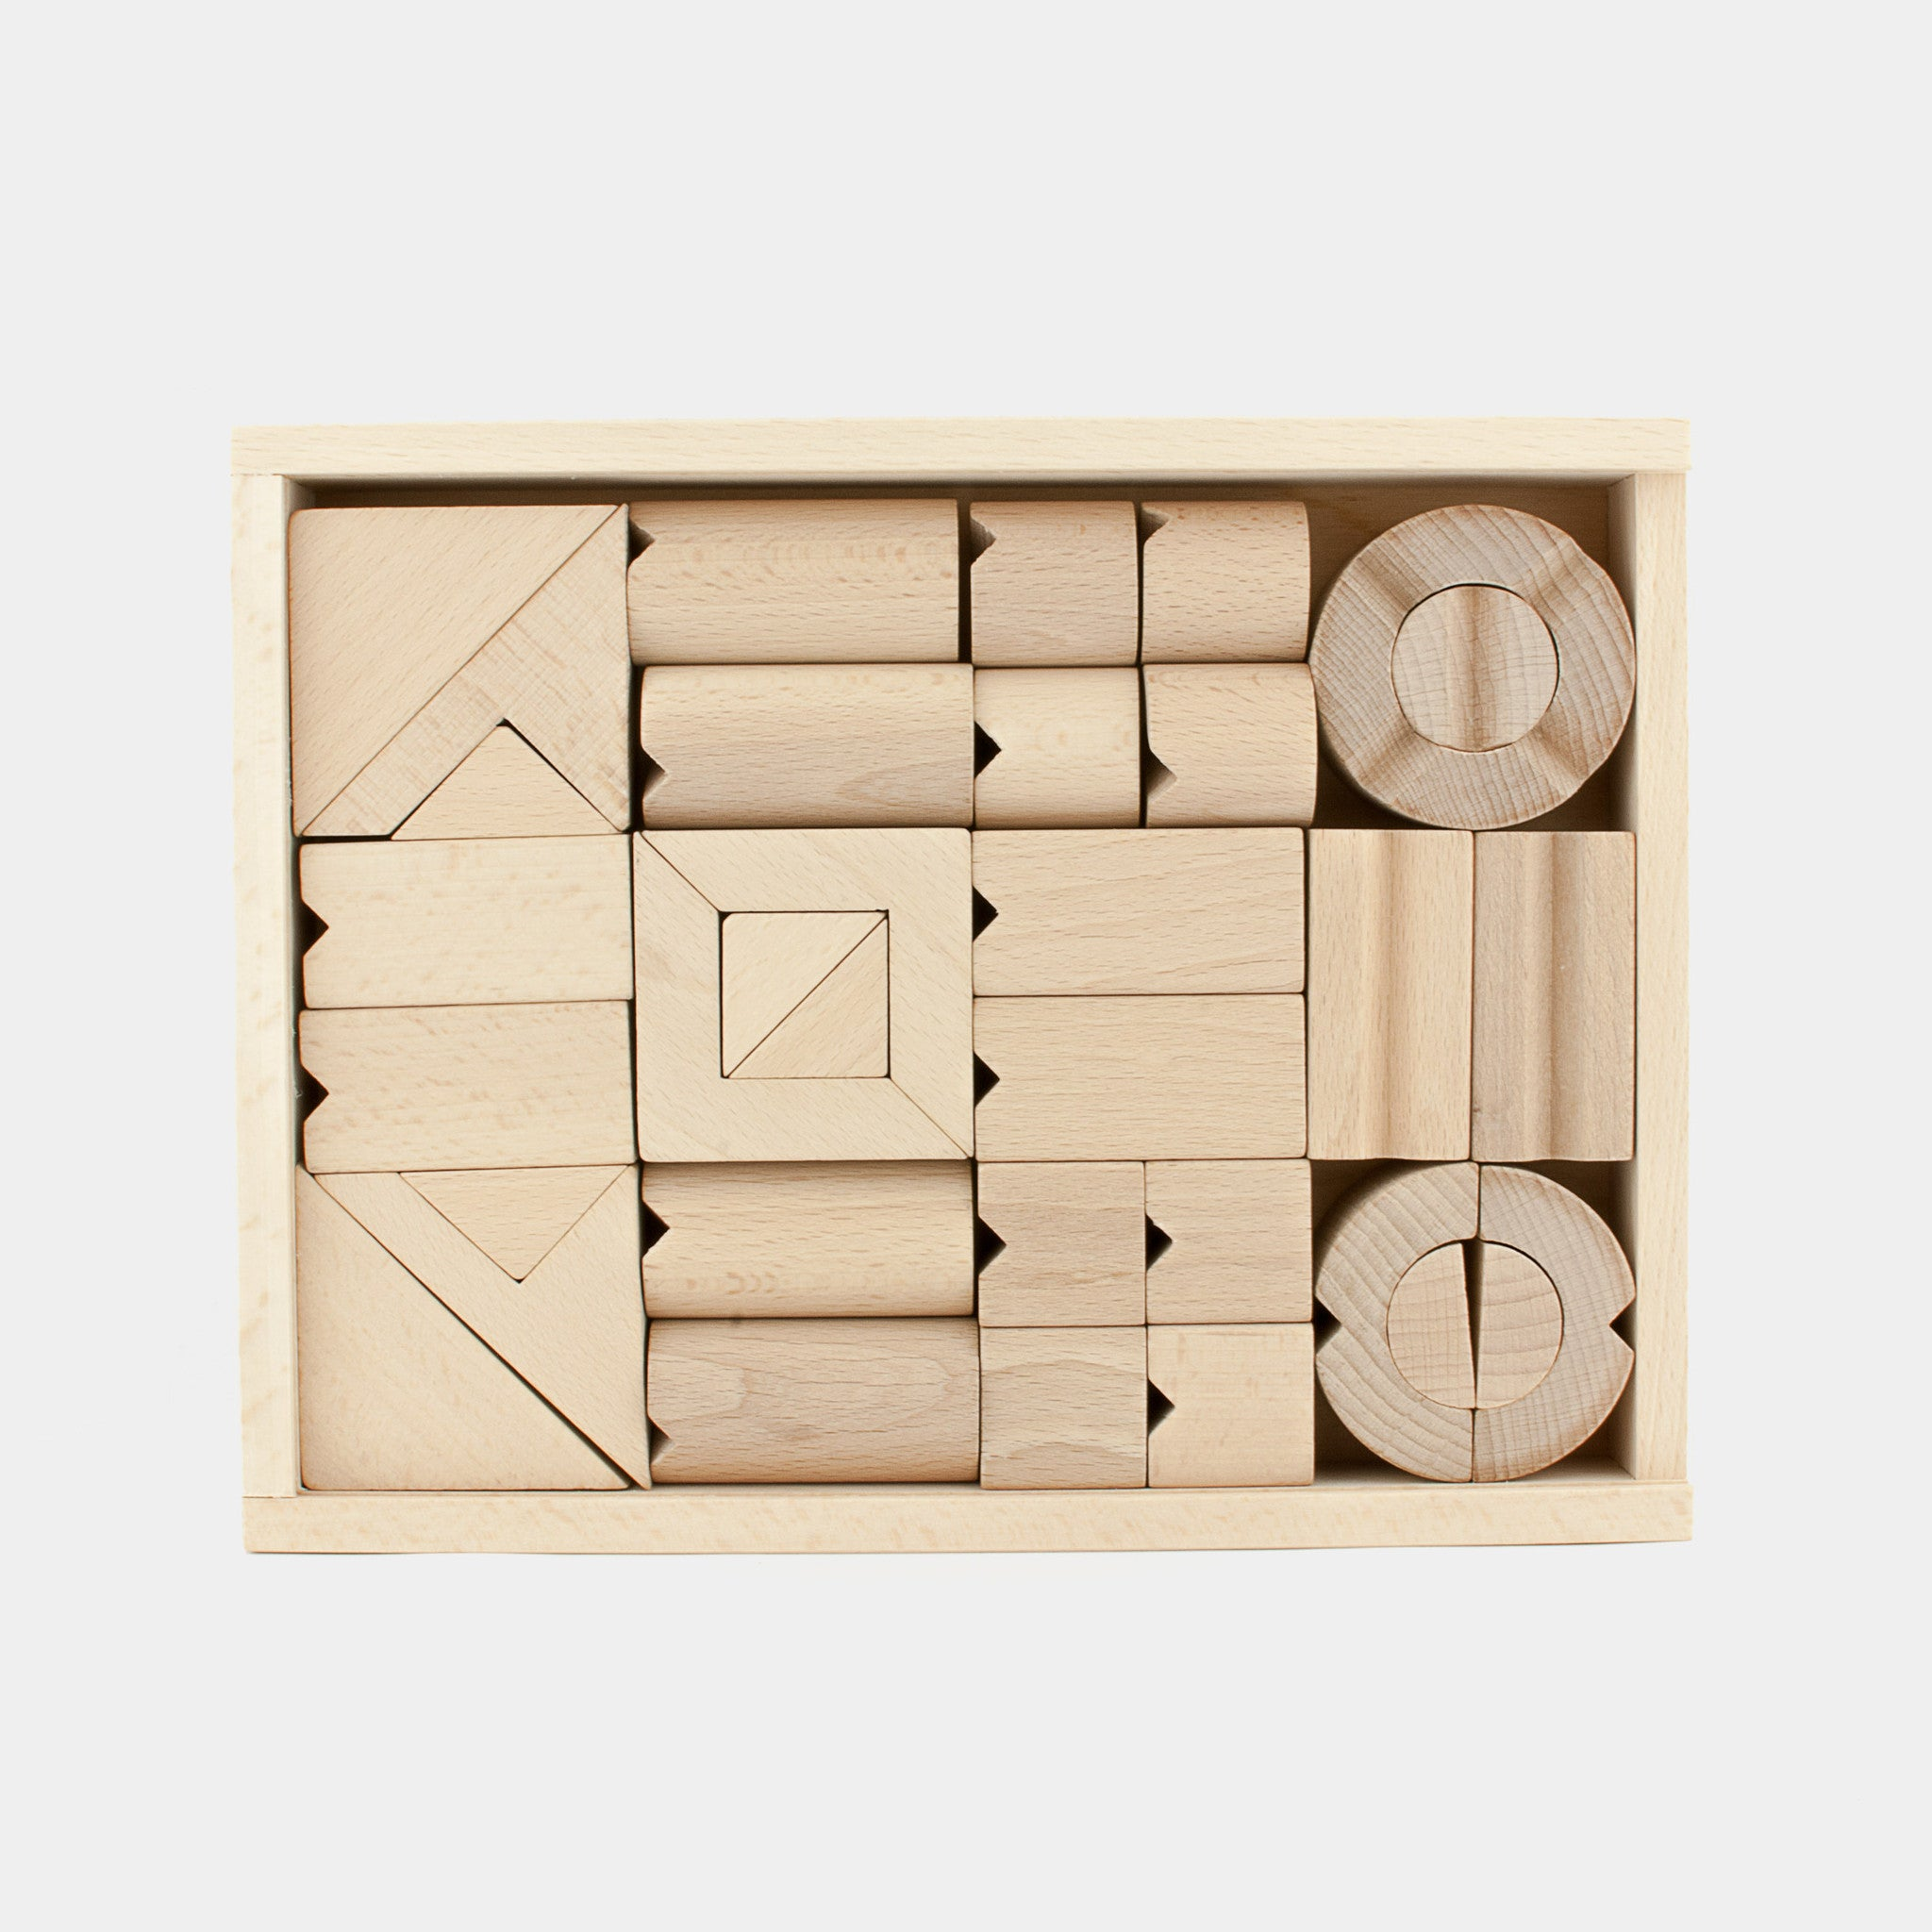 Tsumiki – Japanese Building Blocks